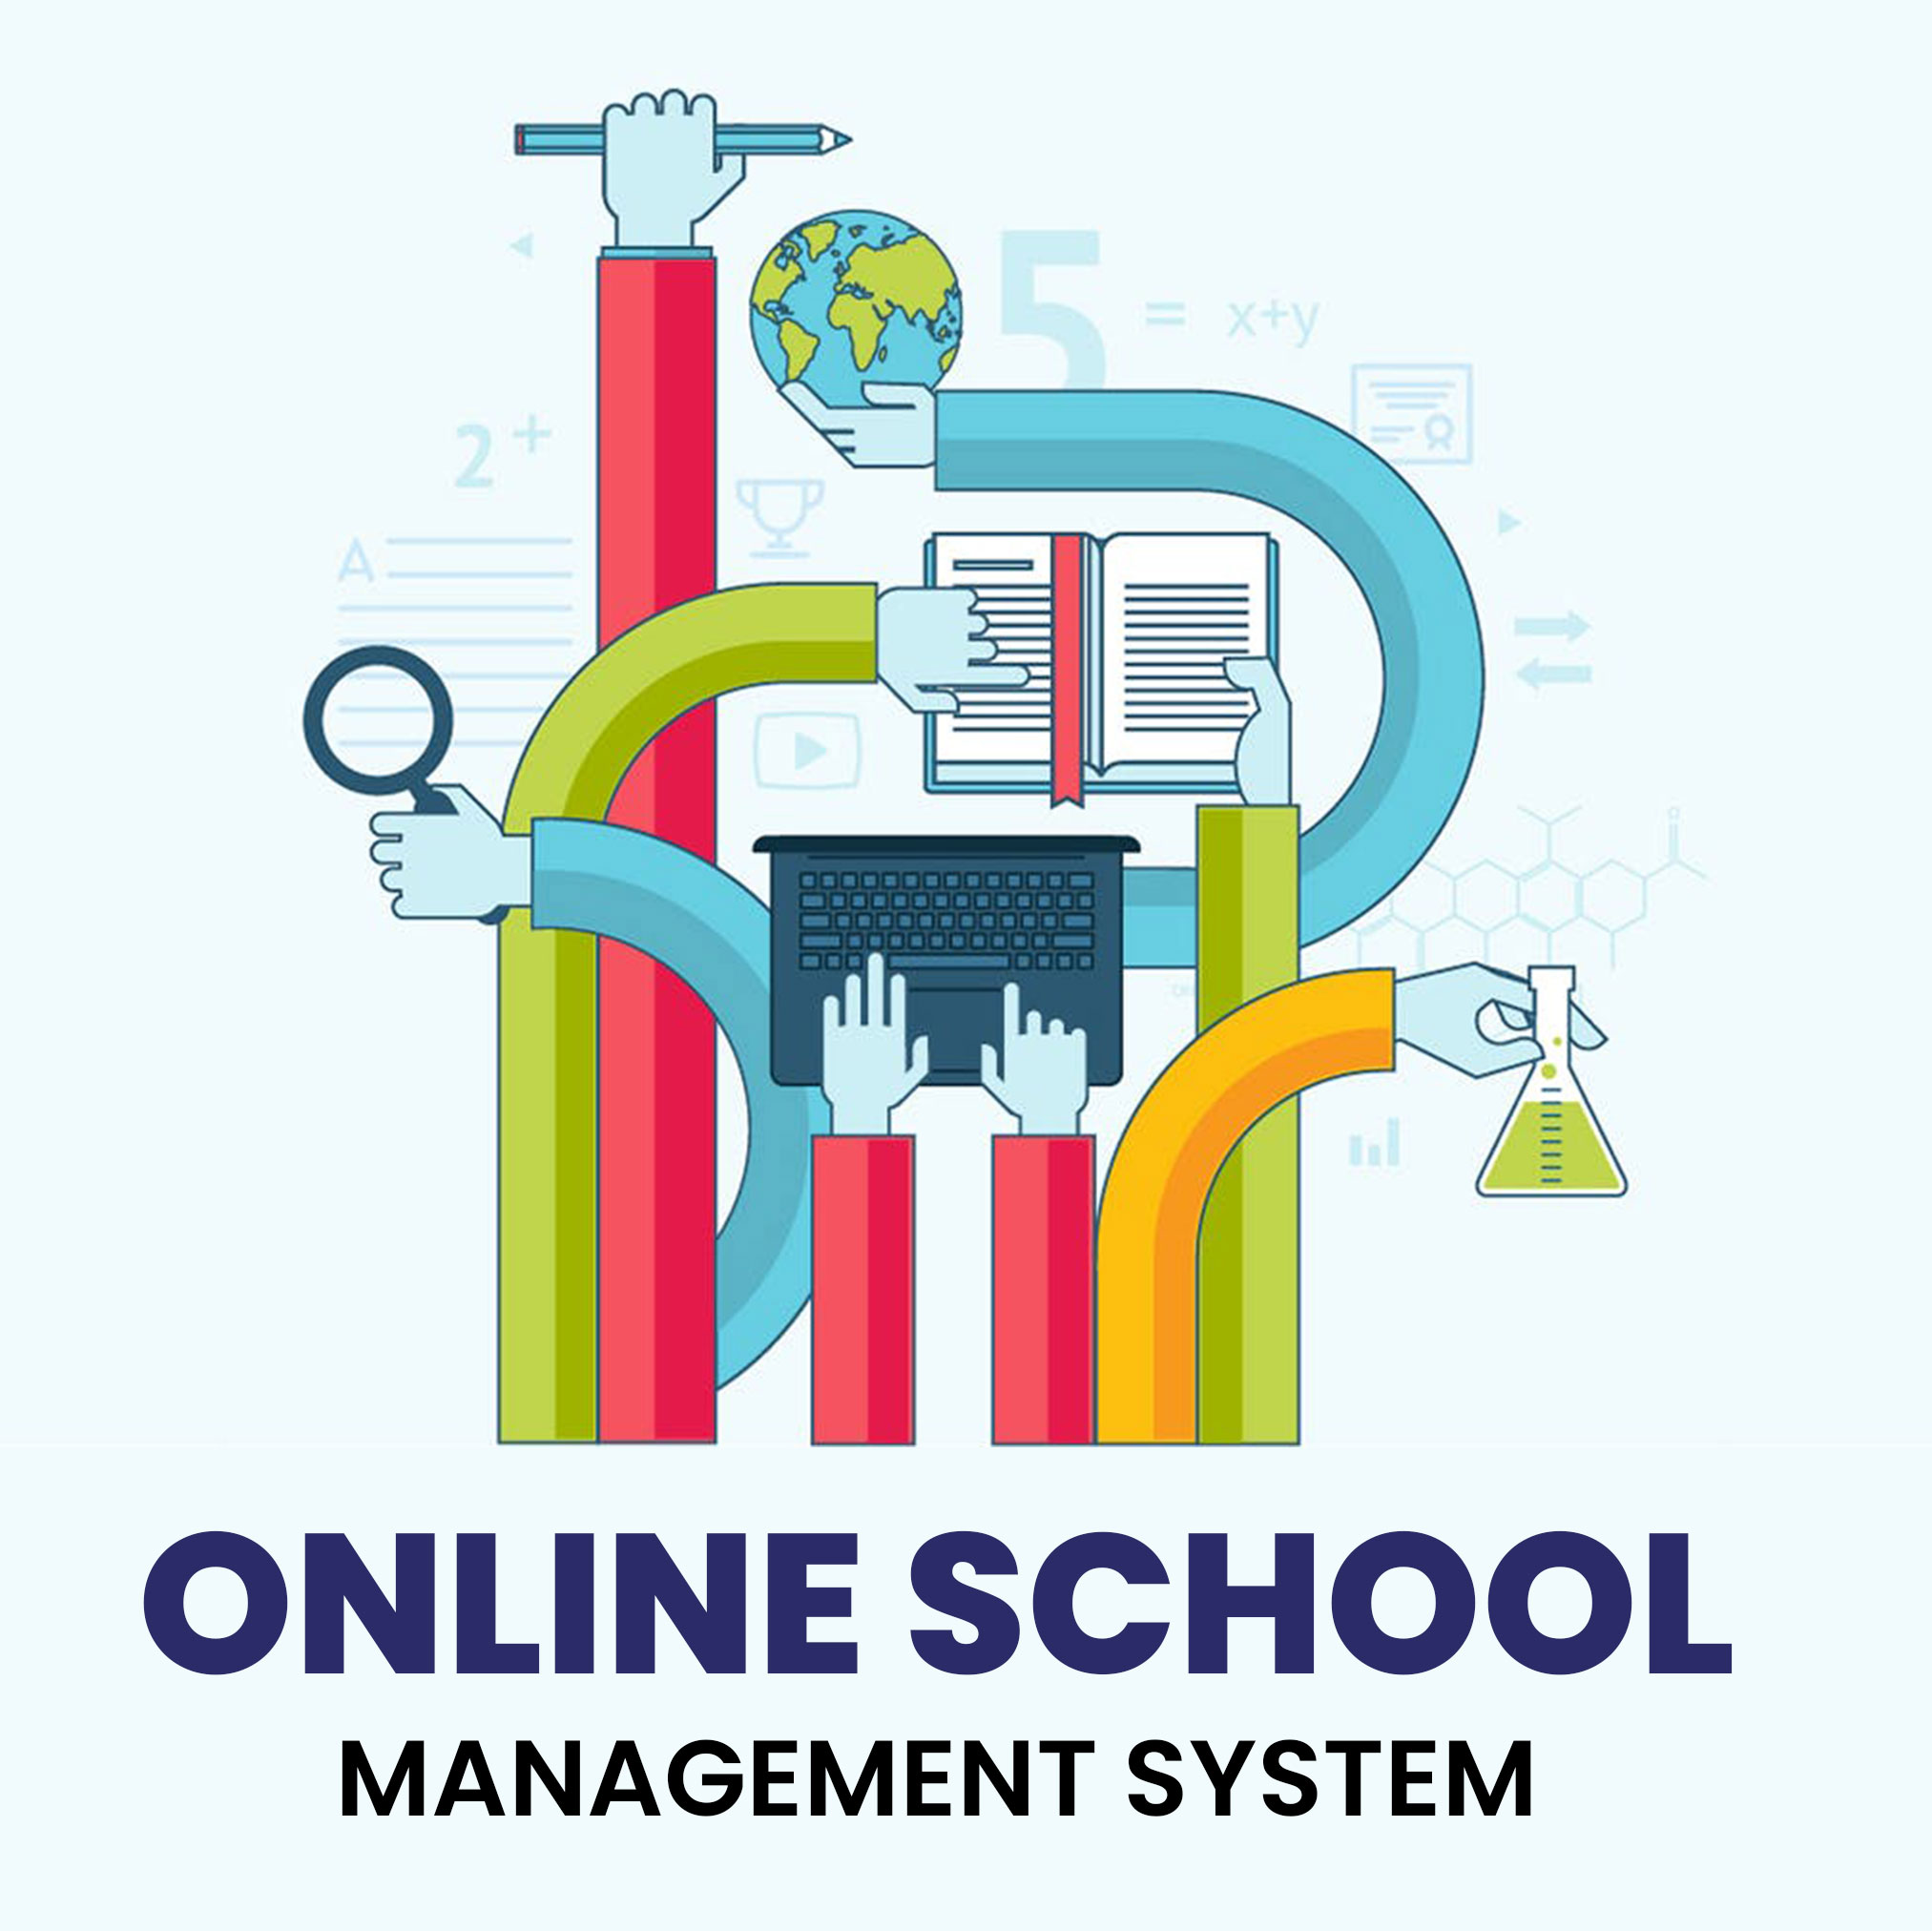 Significance of an Online School Management System